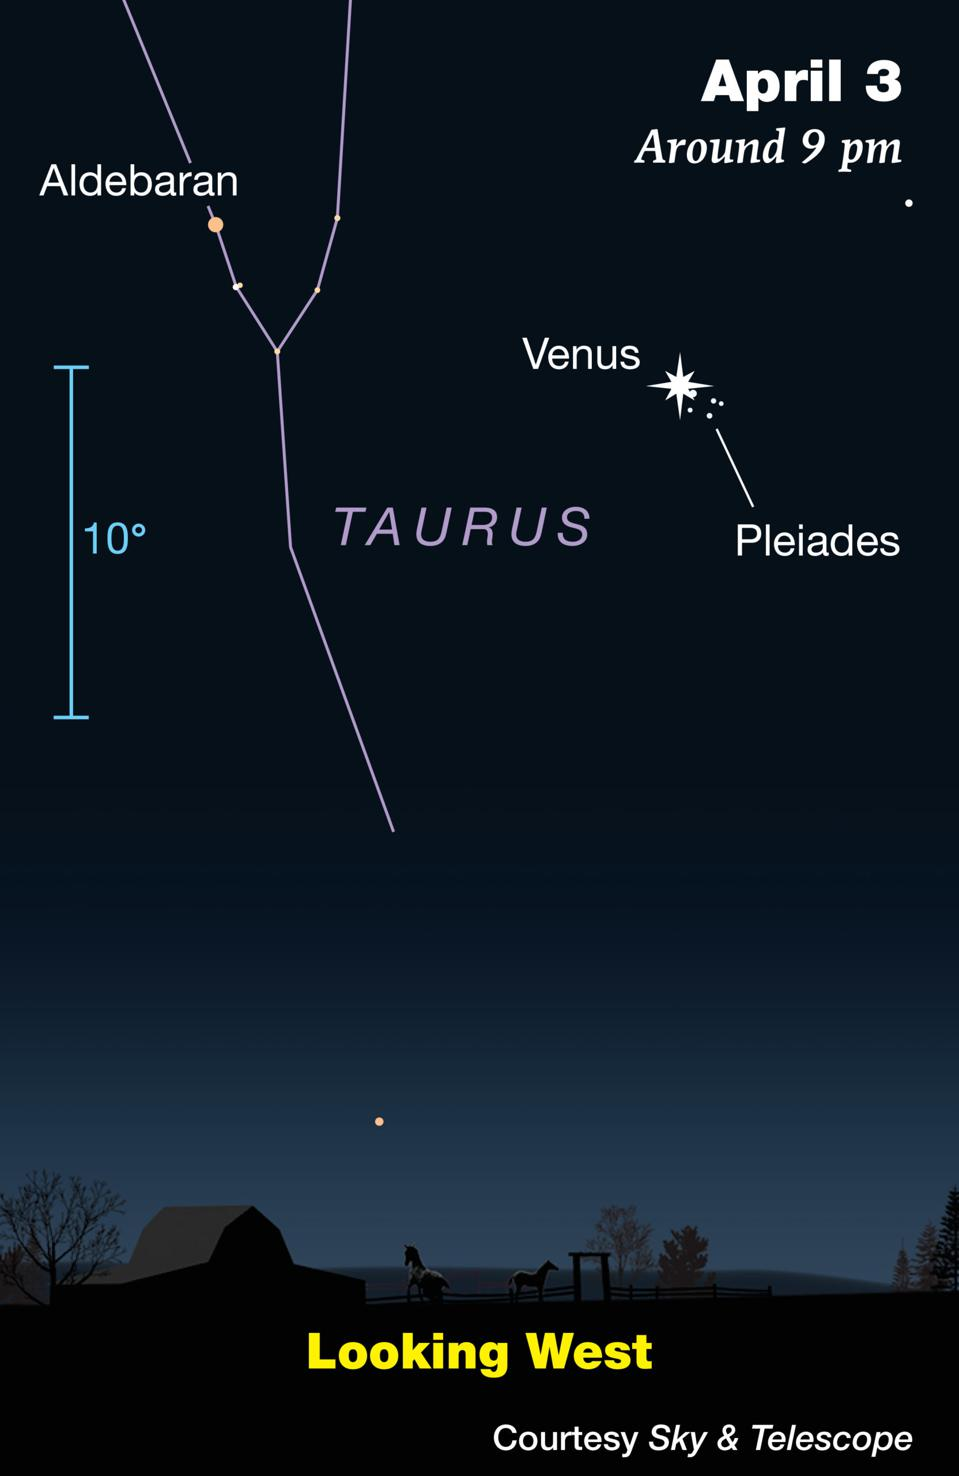 Friday sees Venus and the Pleiades in an apparent cosmic embrace.